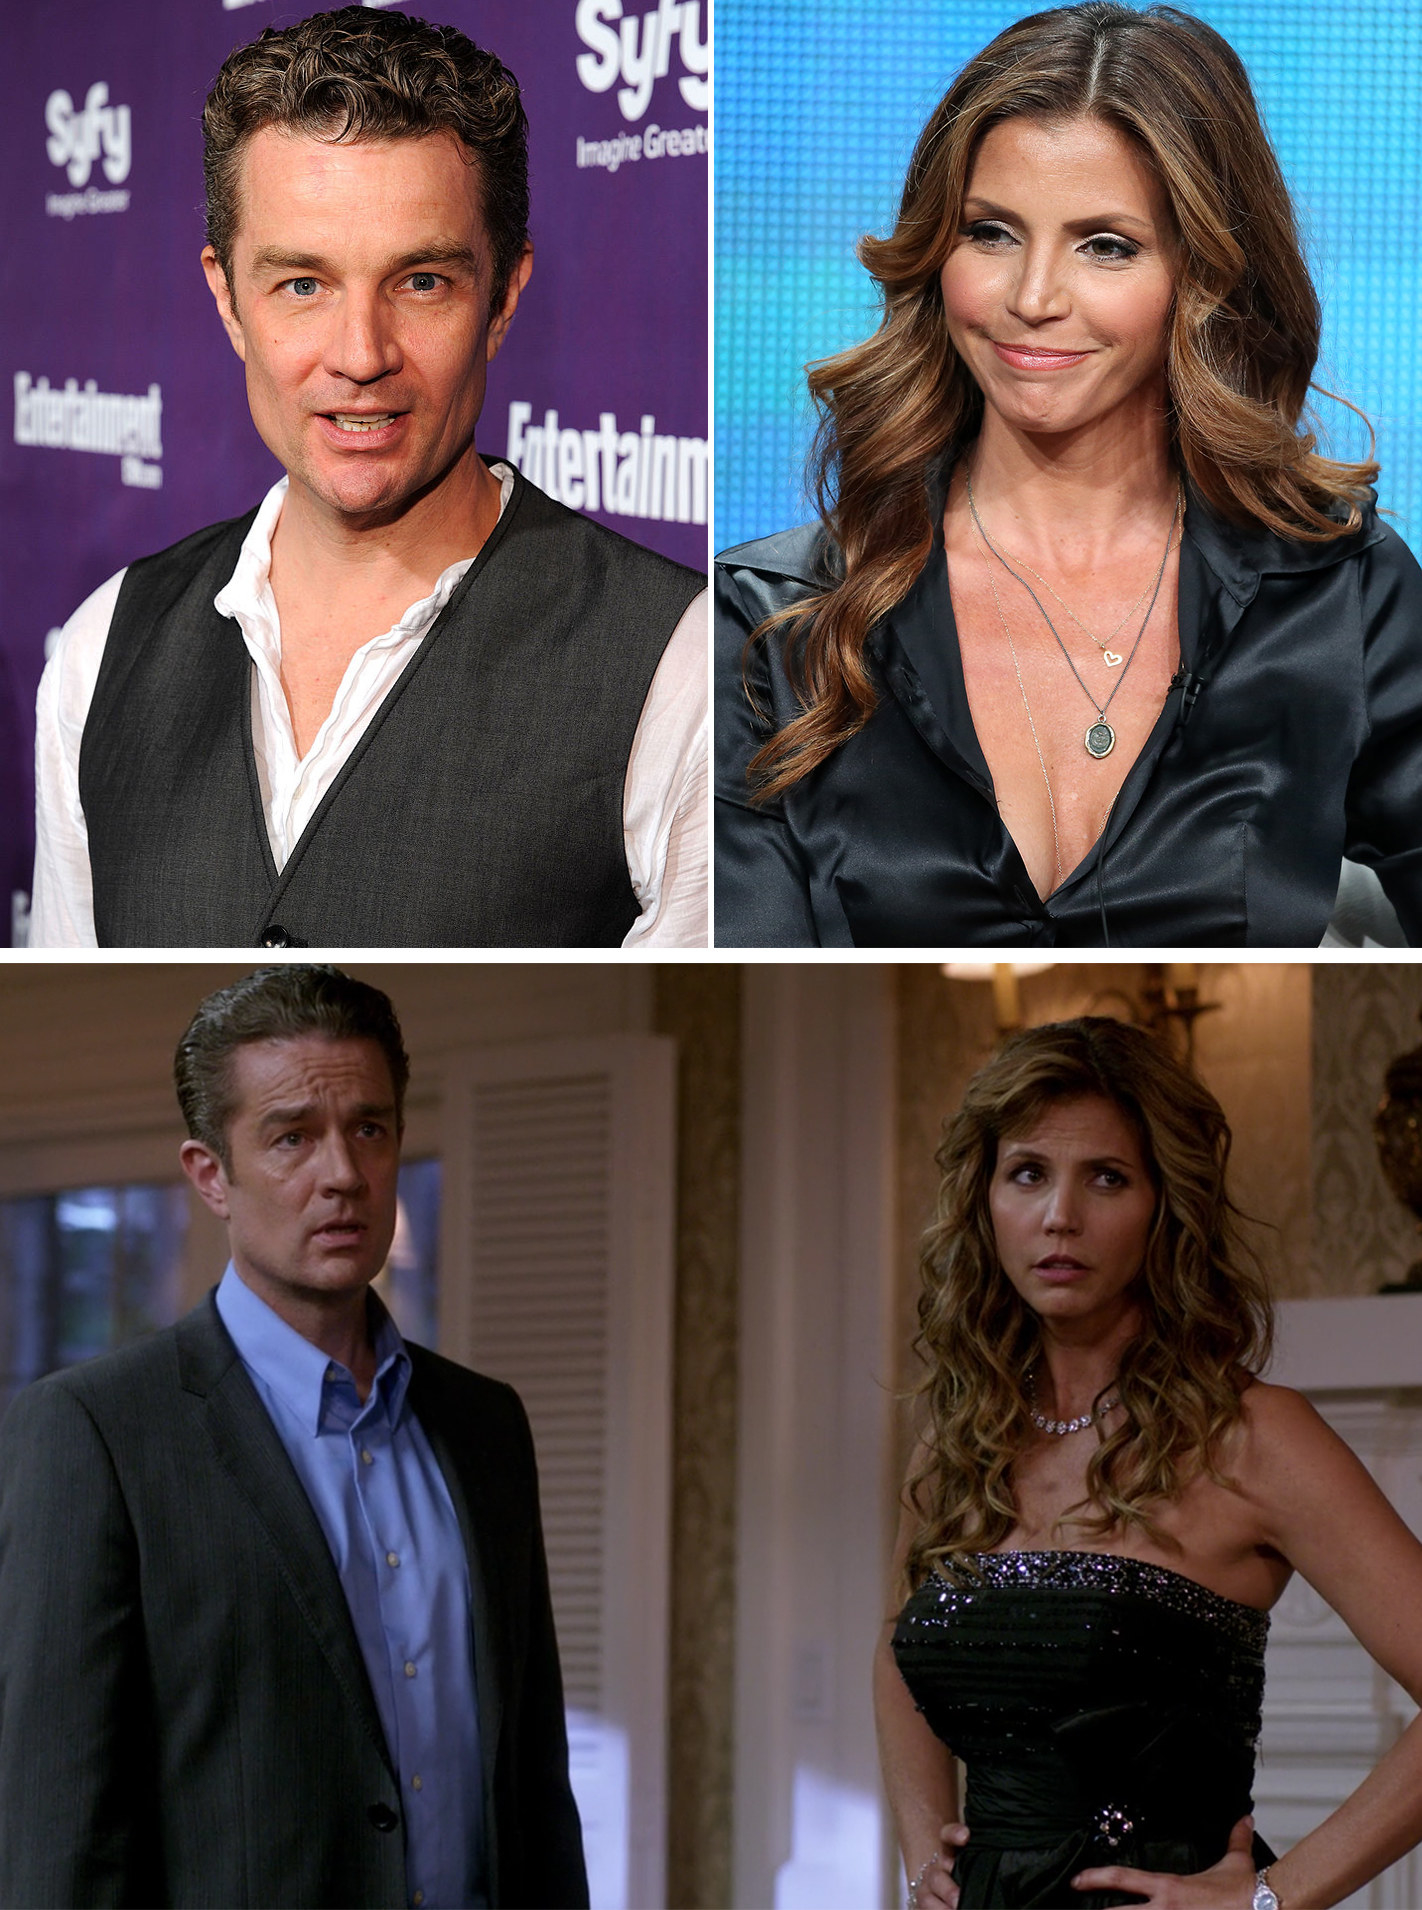 Buffy the Vampire Slayer  stars James Marsters and Charisma Carpenter reunited for an episode where they played married witches.